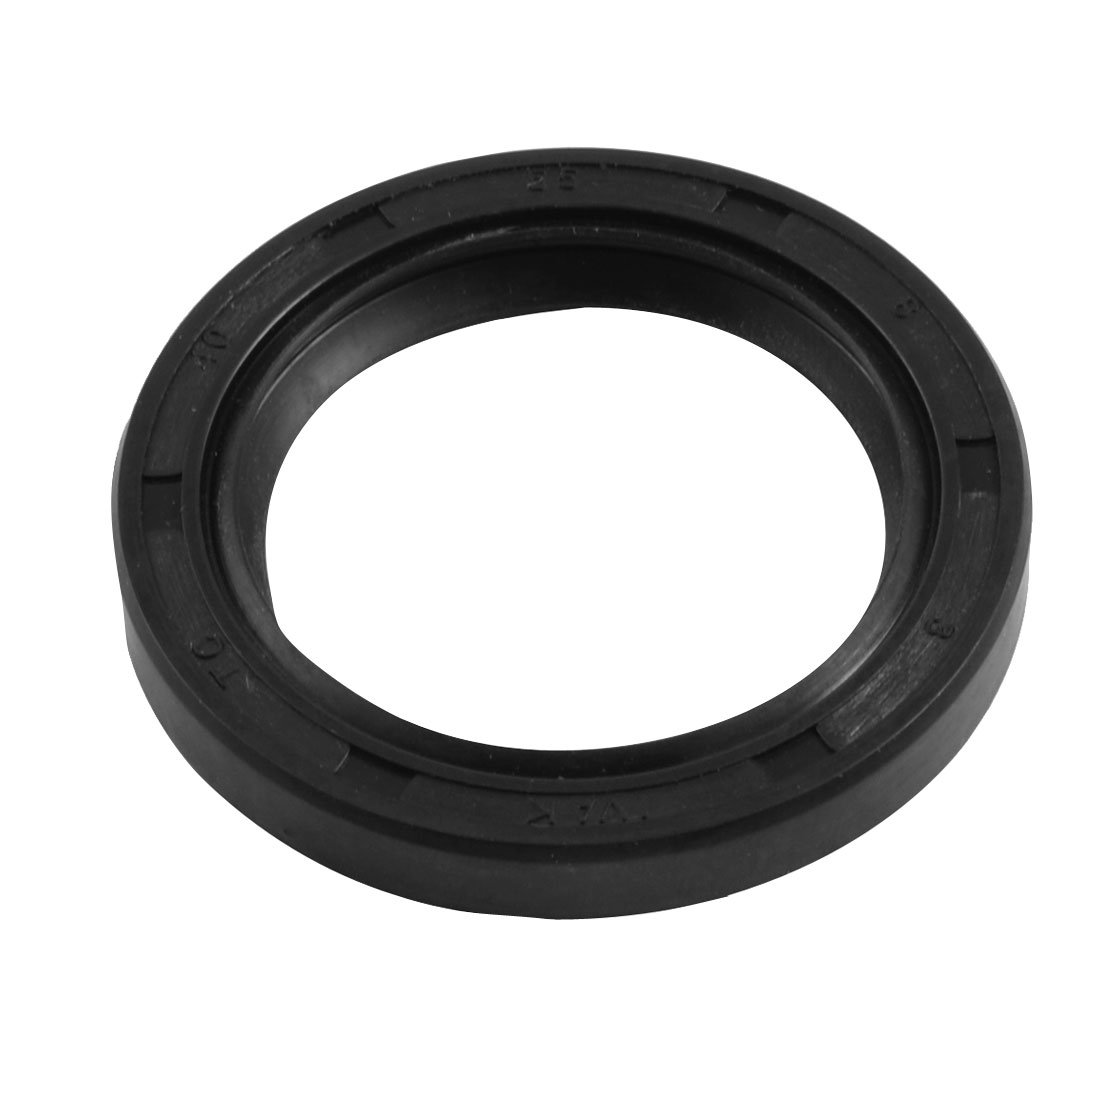 40mm x 55mm x 8mm Metric NBR Double Lipped Oil Shaft Seal TC